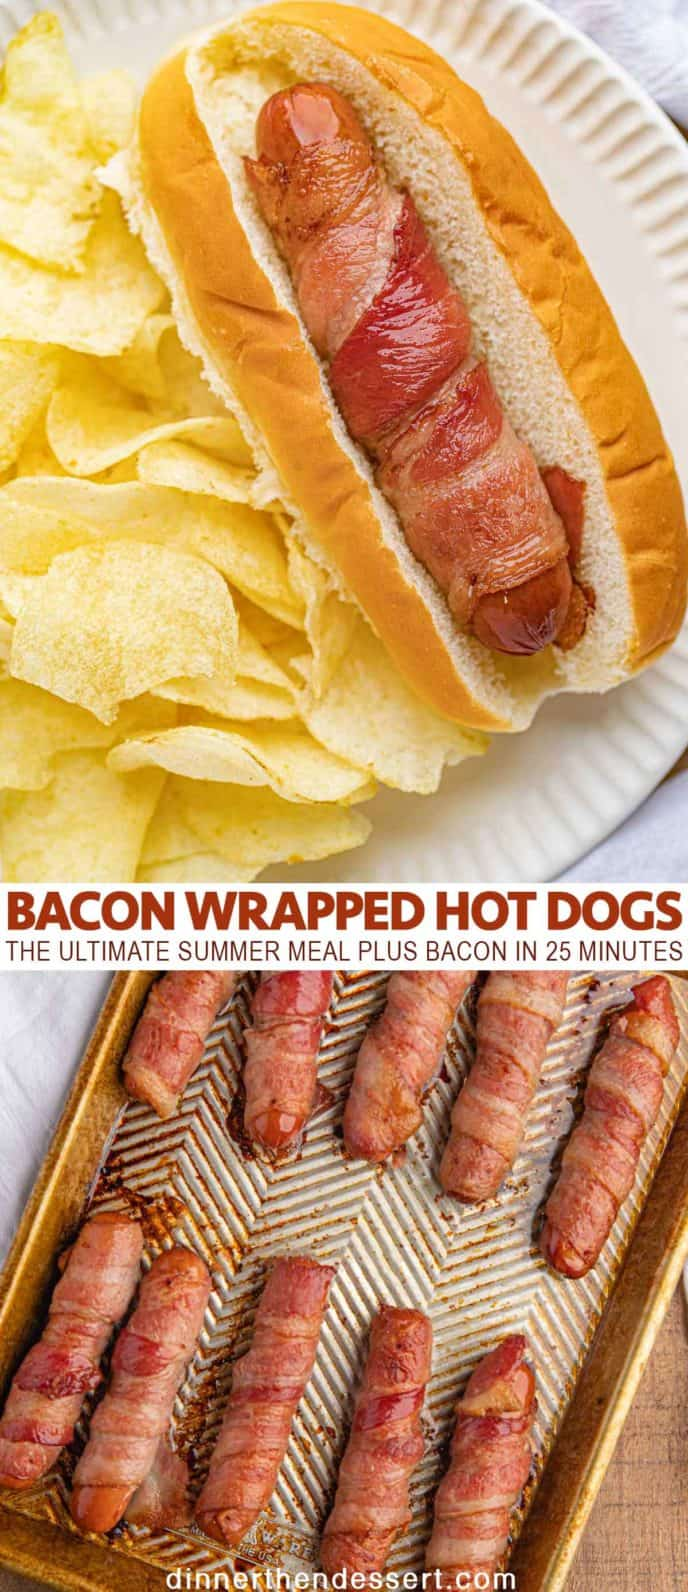 Bacon Wrapped Hot Dogs Dinner Then Dessert